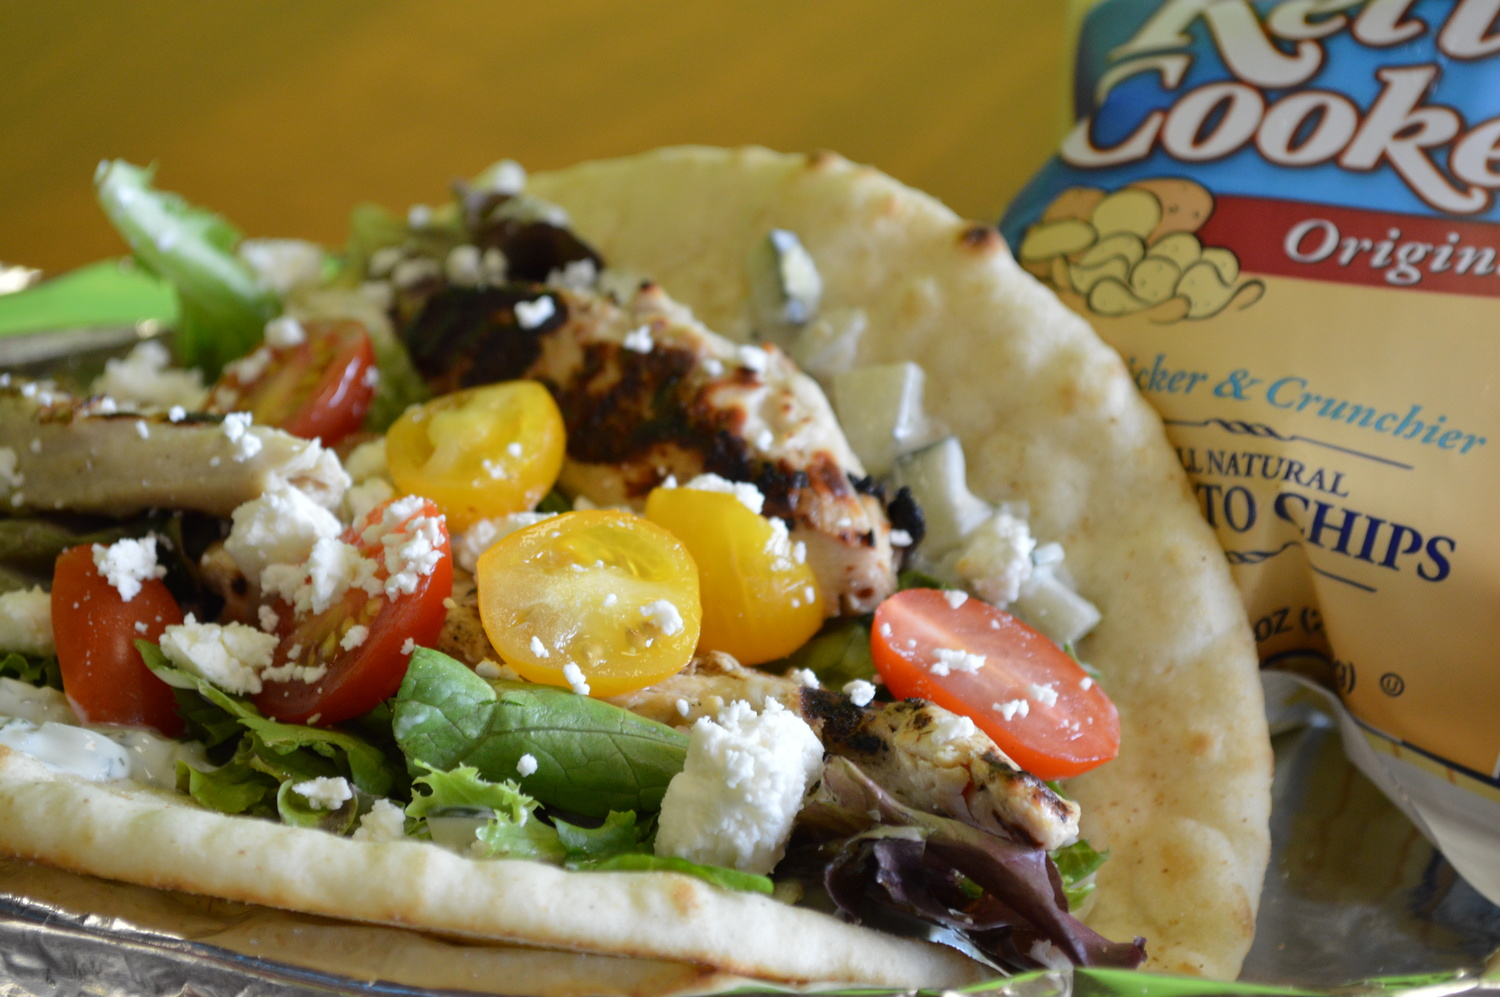 Our Most Popular Item 5 Years Running, The City Chicken Pita